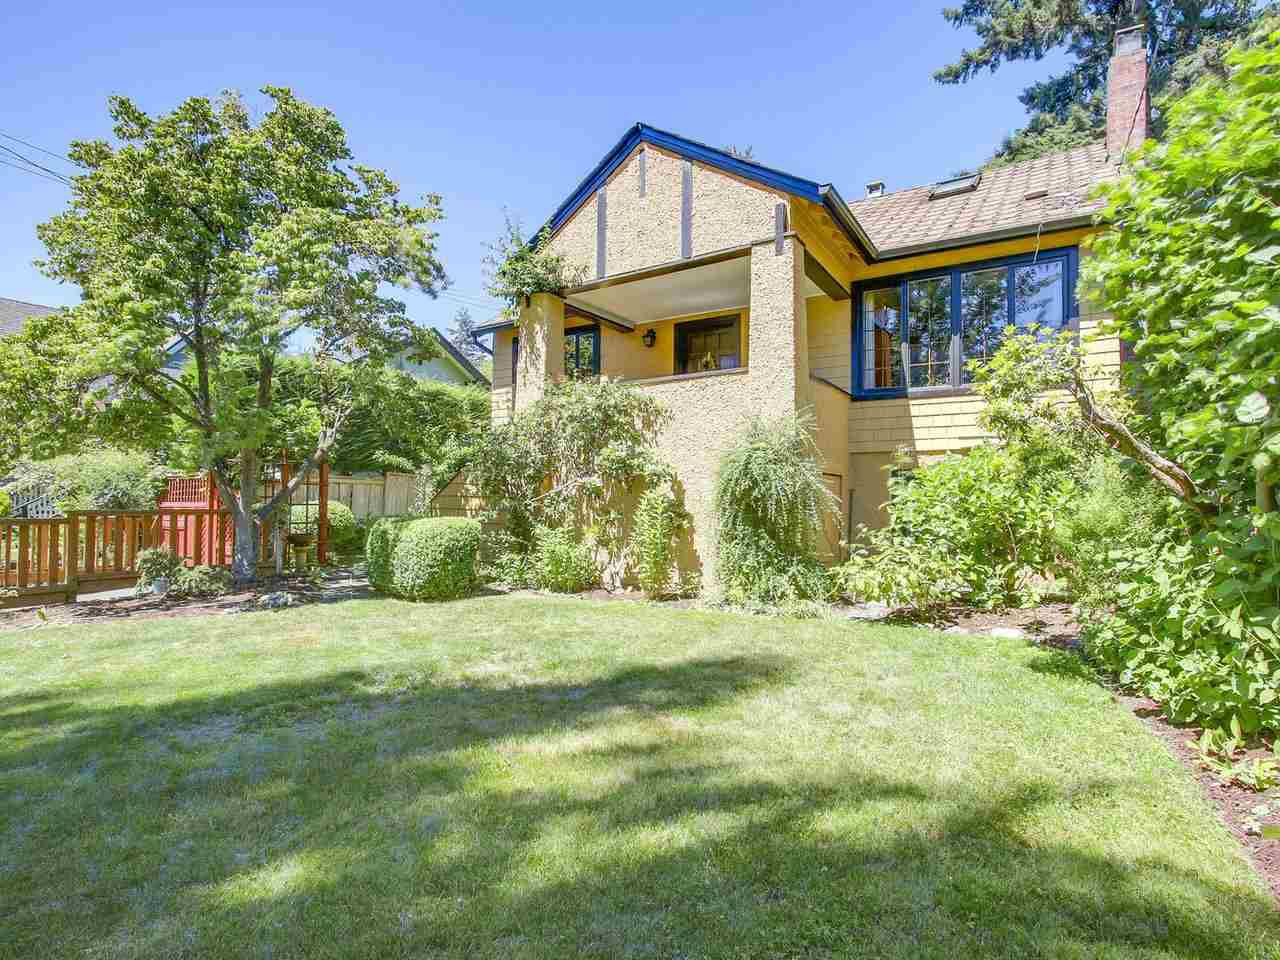 Main Photo: 3335 W 40TH Avenue in Vancouver: Dunbar House for sale (Vancouver West)  : MLS®# R2189527